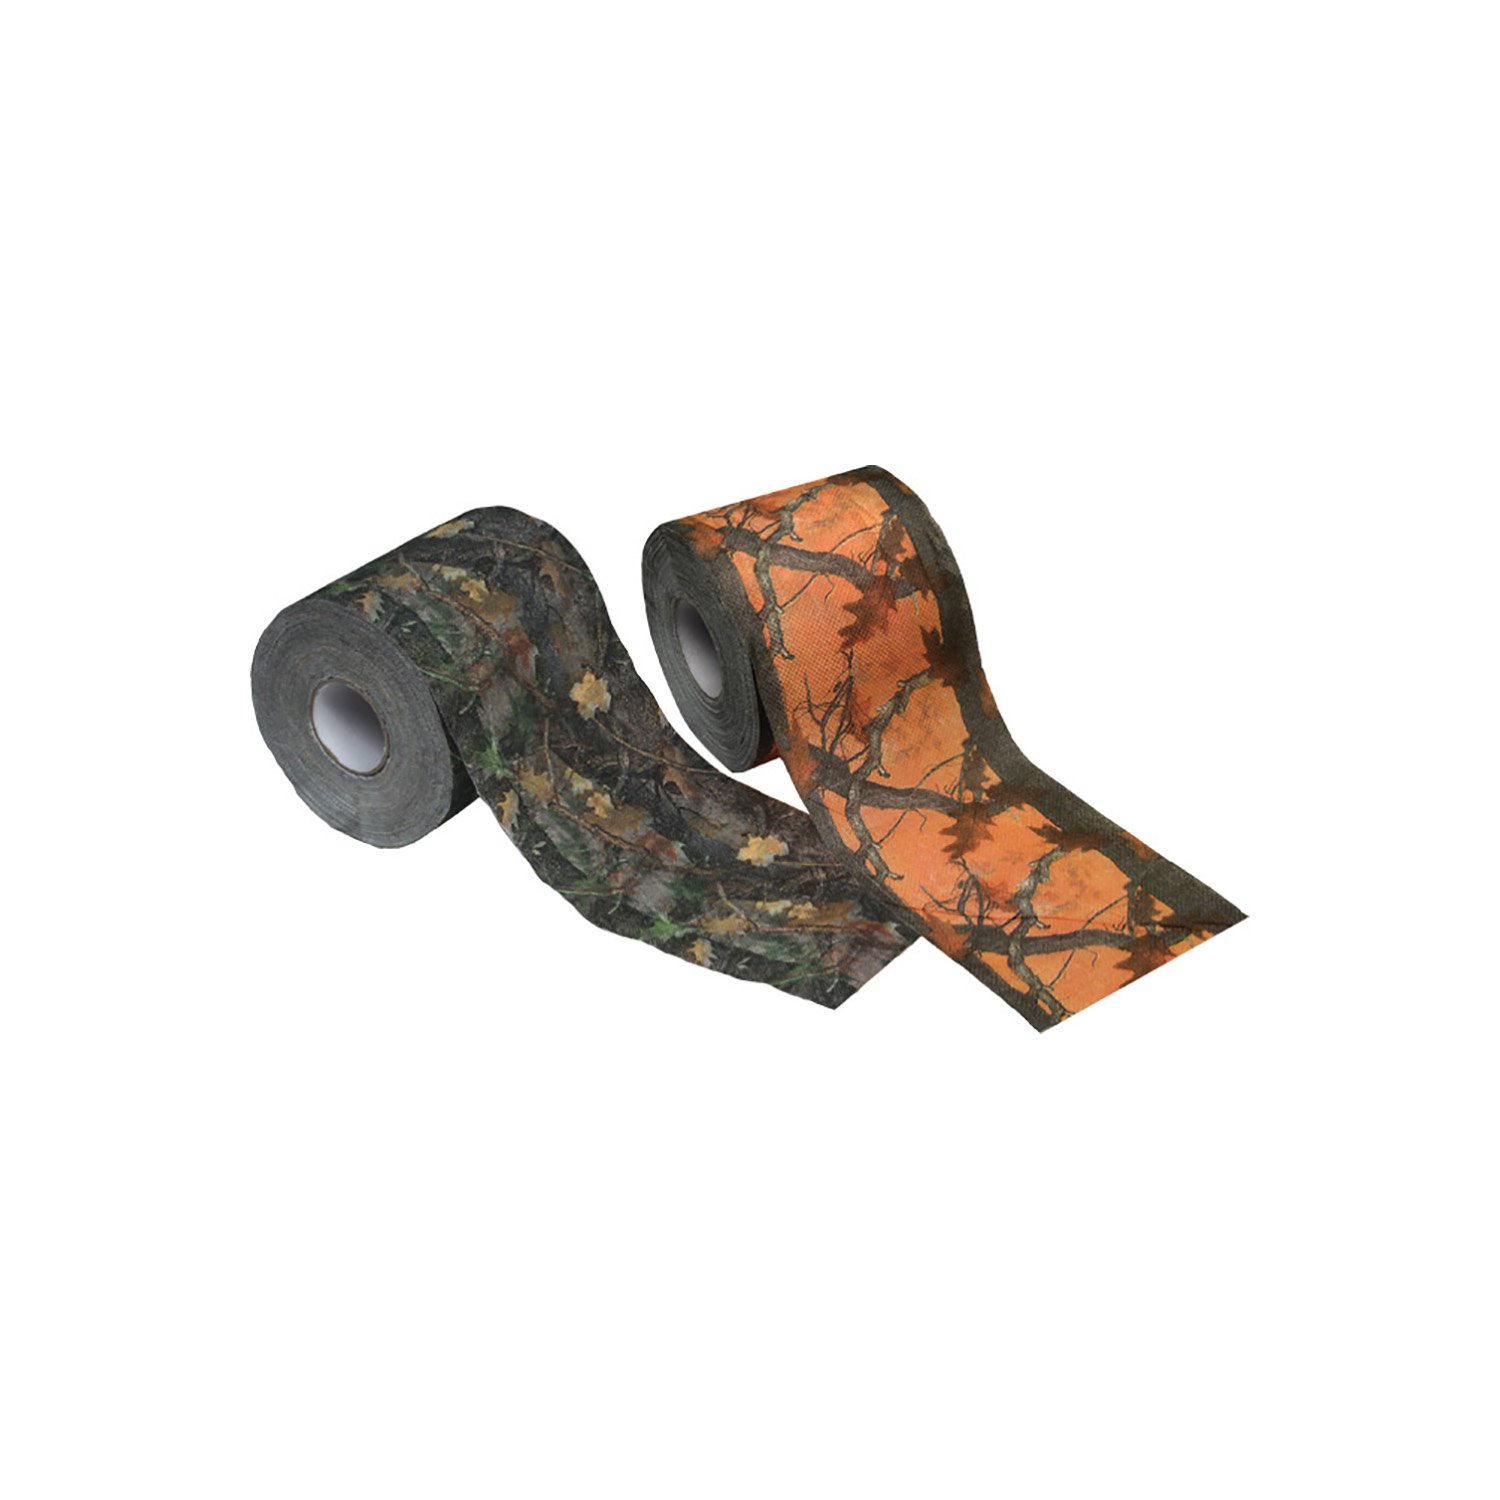 Sophisticated Camo Toilet Paper Amazon Contemporary - Exterior ideas ...